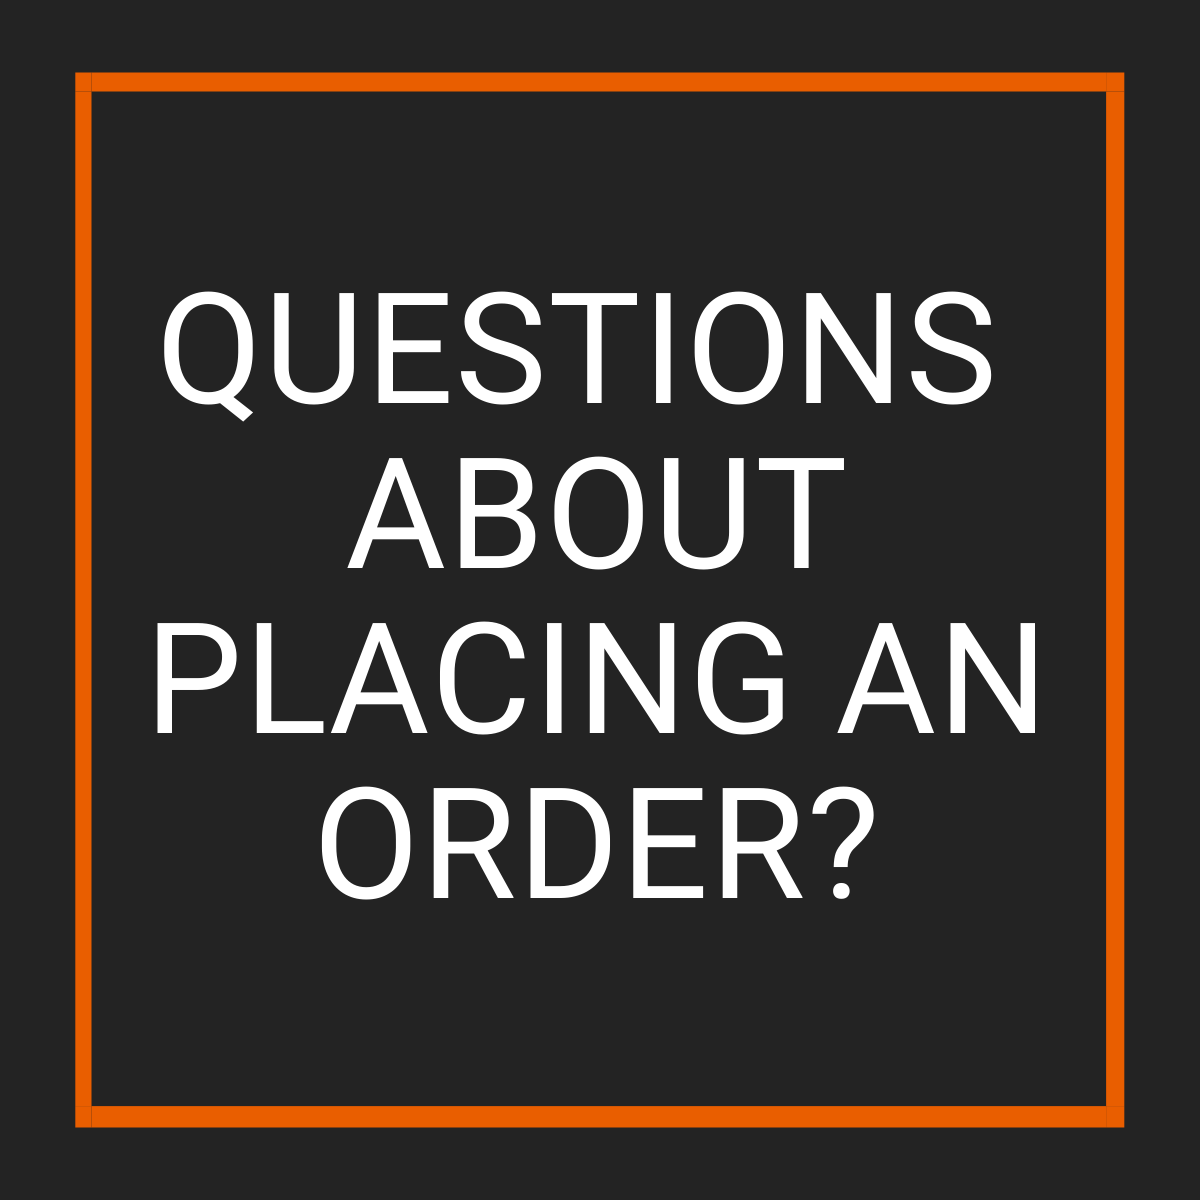 Questions about placing an order? - Fast Replacement Glass